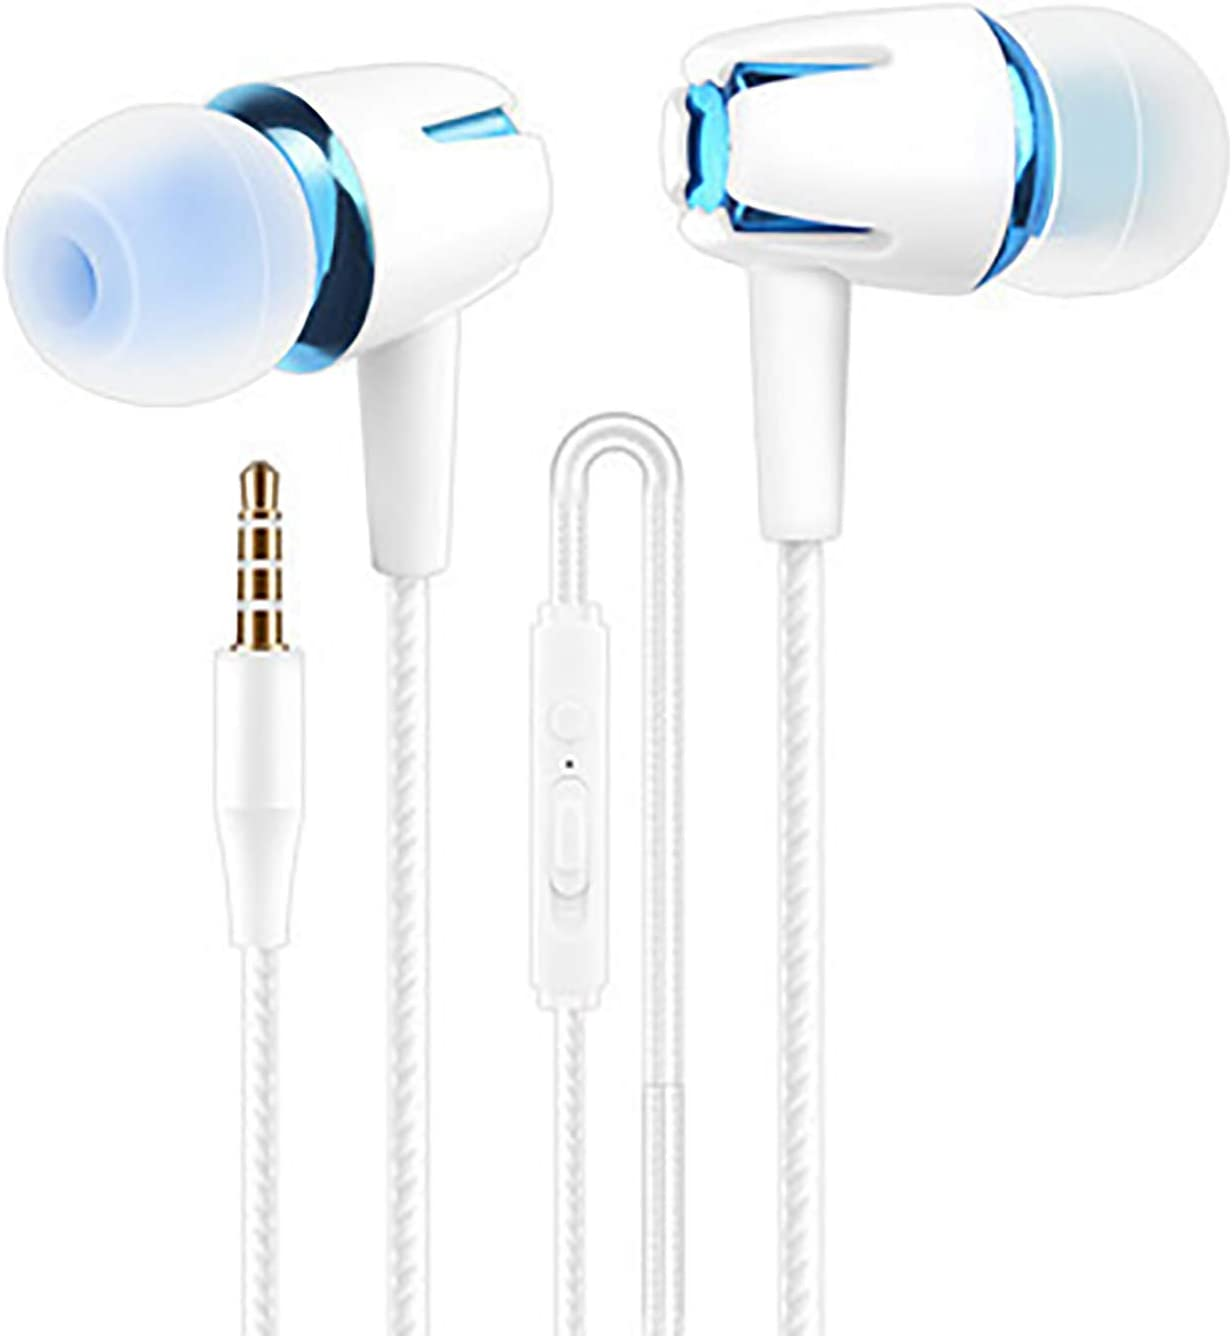 LUYANhapy9 Wired Earphones,Comfortable Noise Reduction Earbuds Stereo Lightweight Fits All 3.5mm Interface Device in-Ear Wired Earbuds for Sports Blue One Size